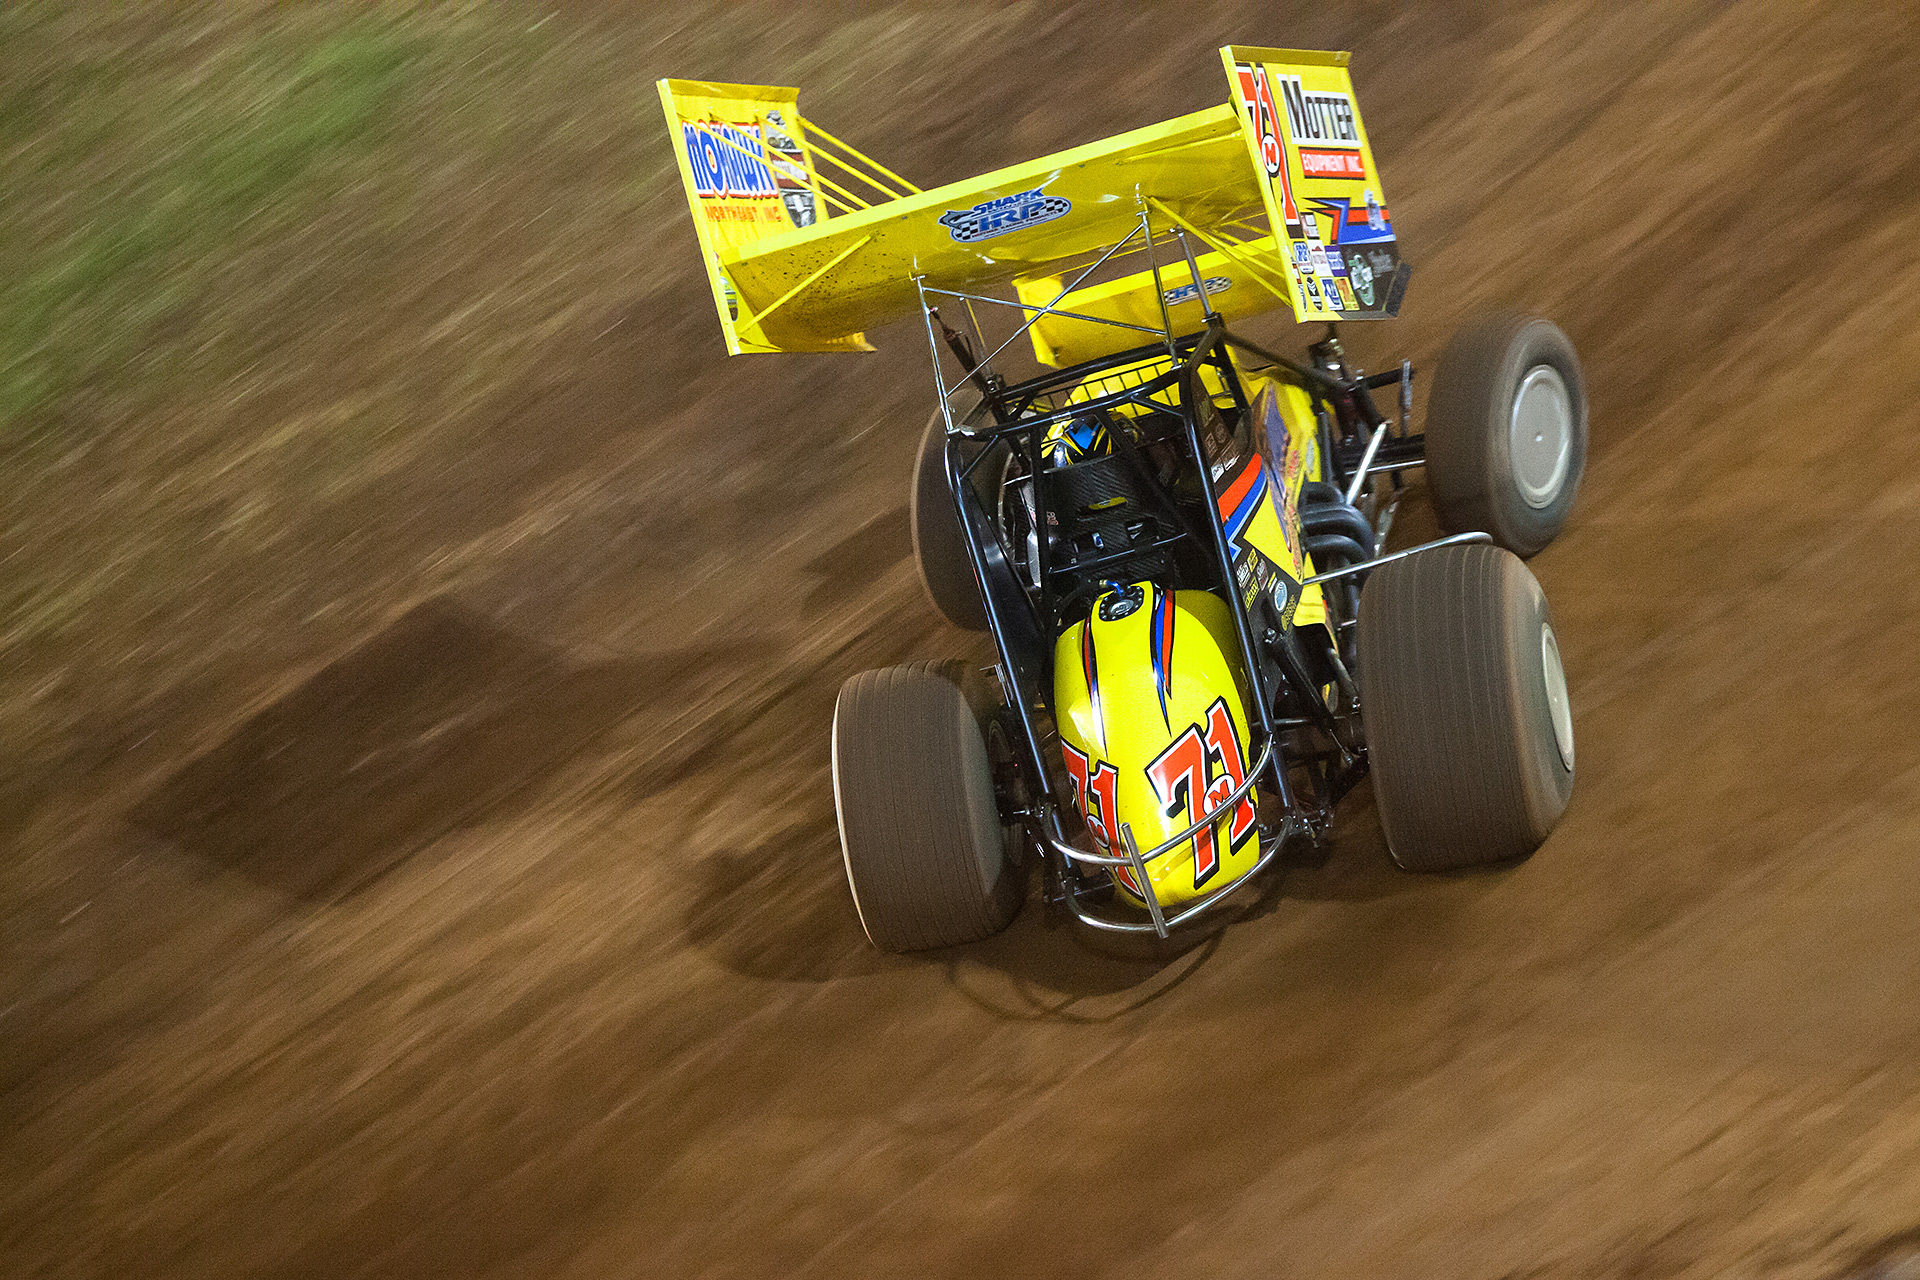 Dave Blaney on the gas, hard into turn 1 picking up the 2nd transfer spot in the Last Chance Showdown at World of Outlaws World Finals in Charlotte. ( Jeffrey Turford / TDP )